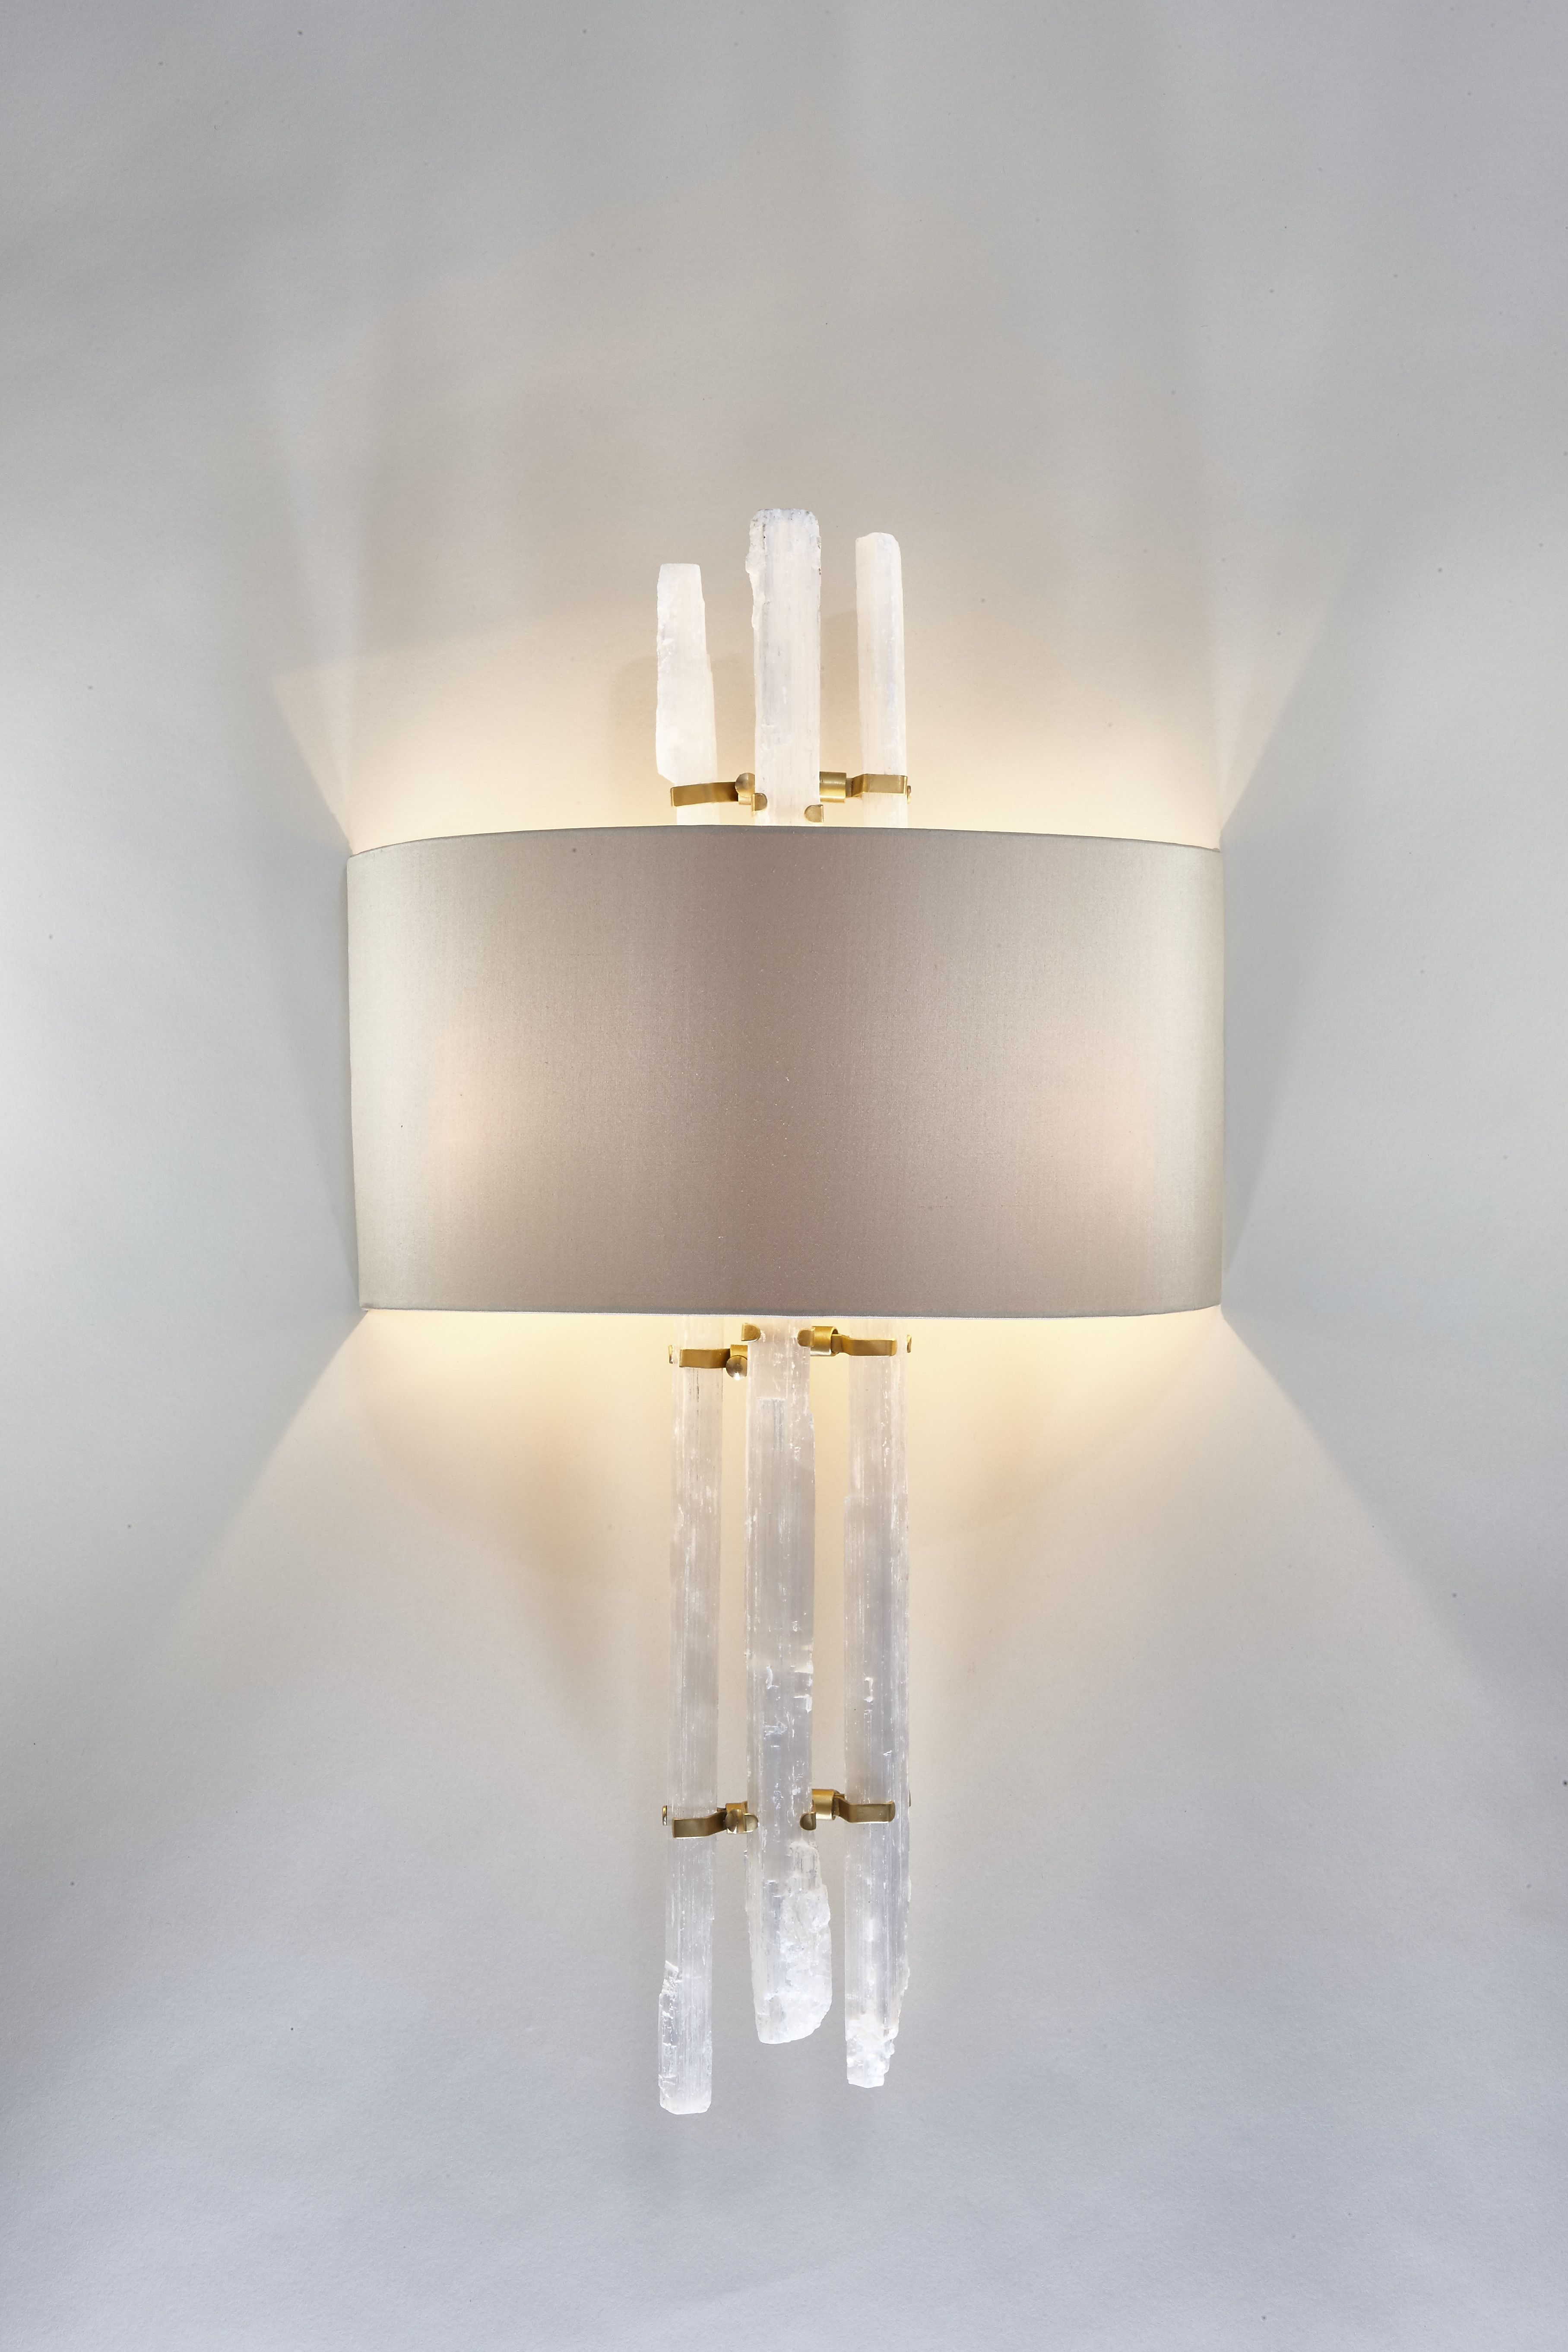 Rock crystal wall light made for cocovara interiors by phillips rock crystal wall light made for cocovara interiors by phillips wood aloadofball Image collections